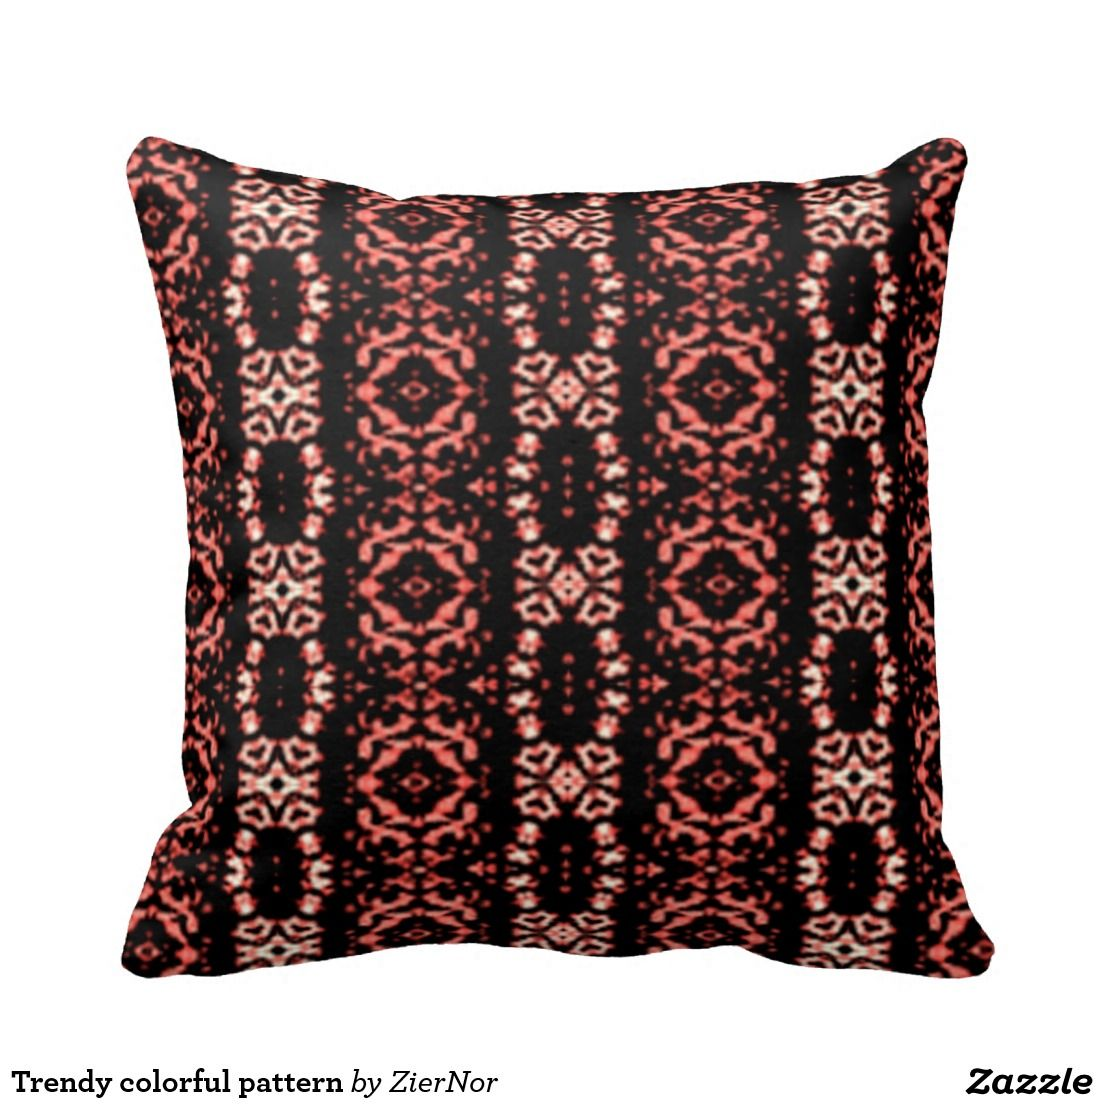 Trendy colorful pattern throw pillow